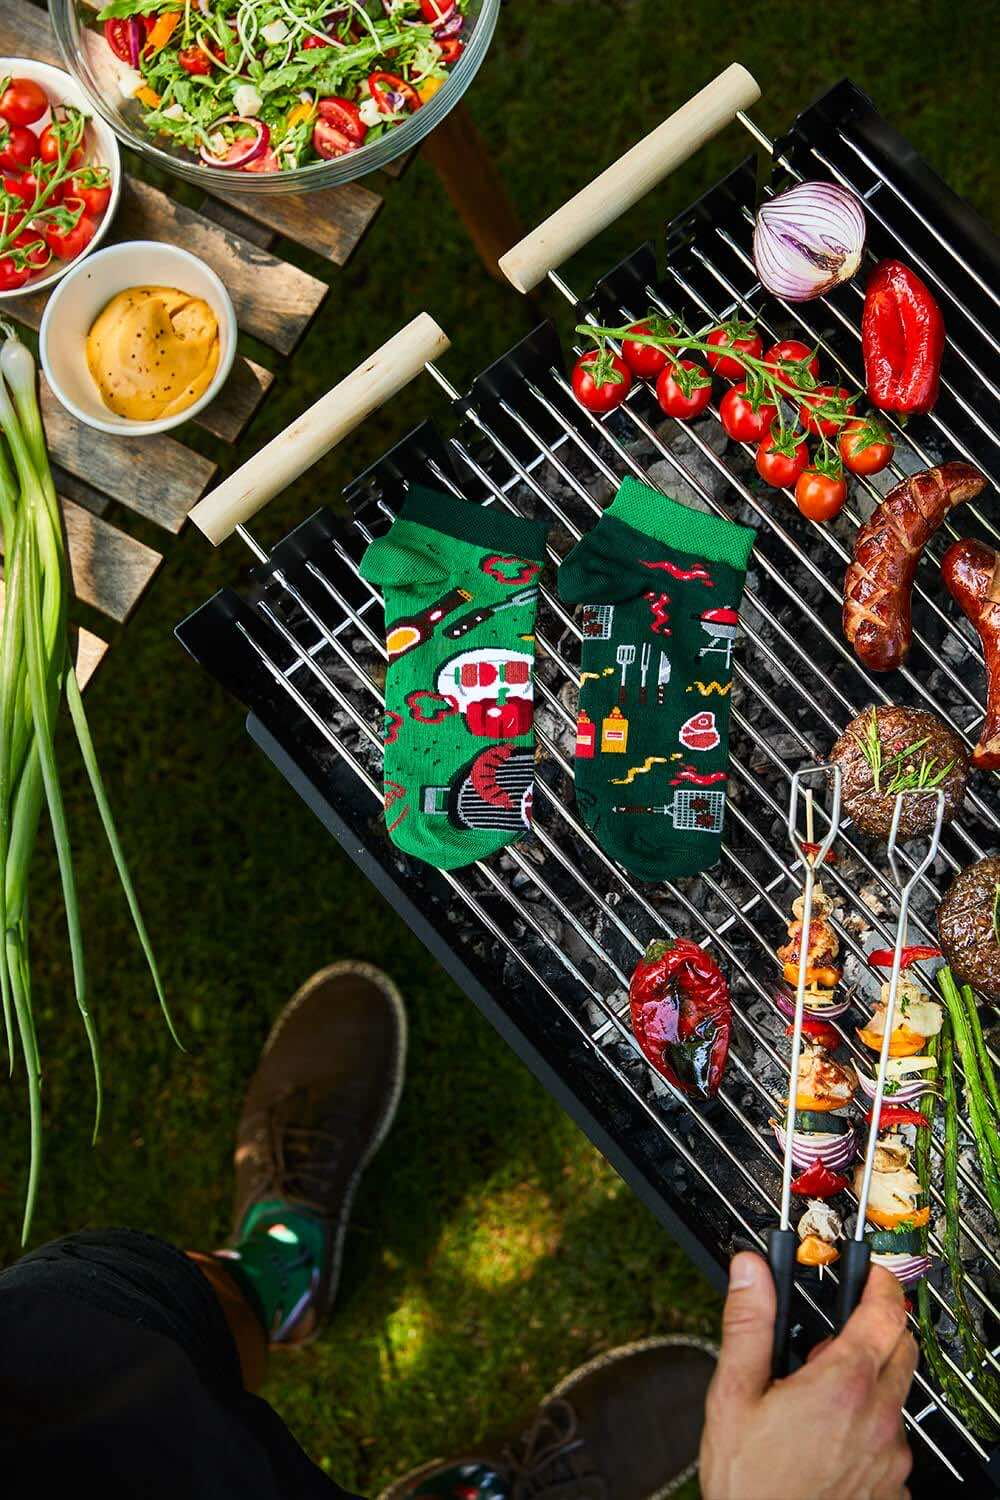 BBQ TIME LOW - Barbecue low socks